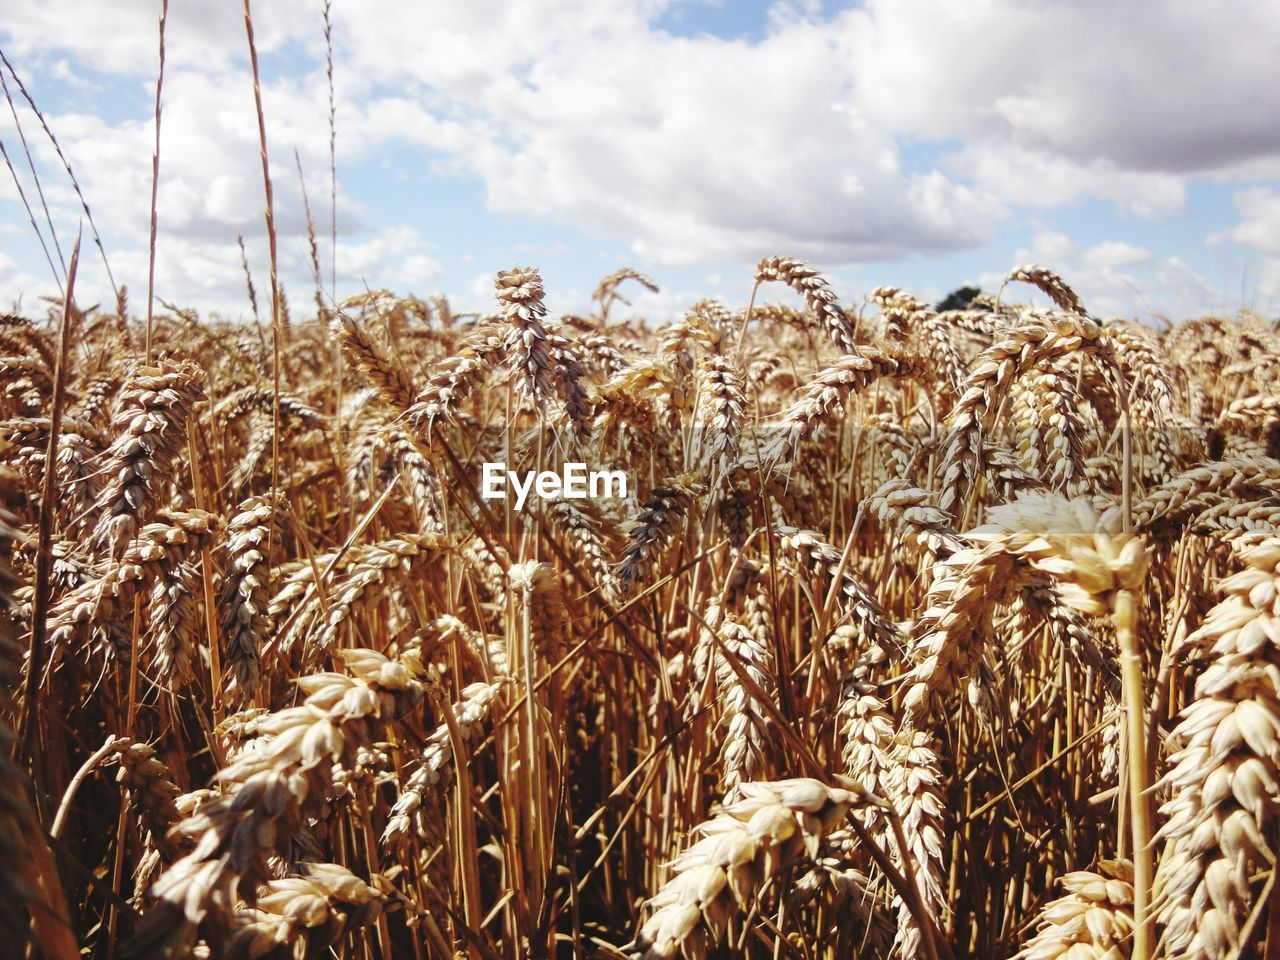 growth, agriculture, crop, cereal plant, field, nature, sky, farm, tranquility, day, plant, tranquil scene, cloud - sky, rural scene, wheat, no people, outdoors, ear of wheat, beauty in nature, landscape, close-up